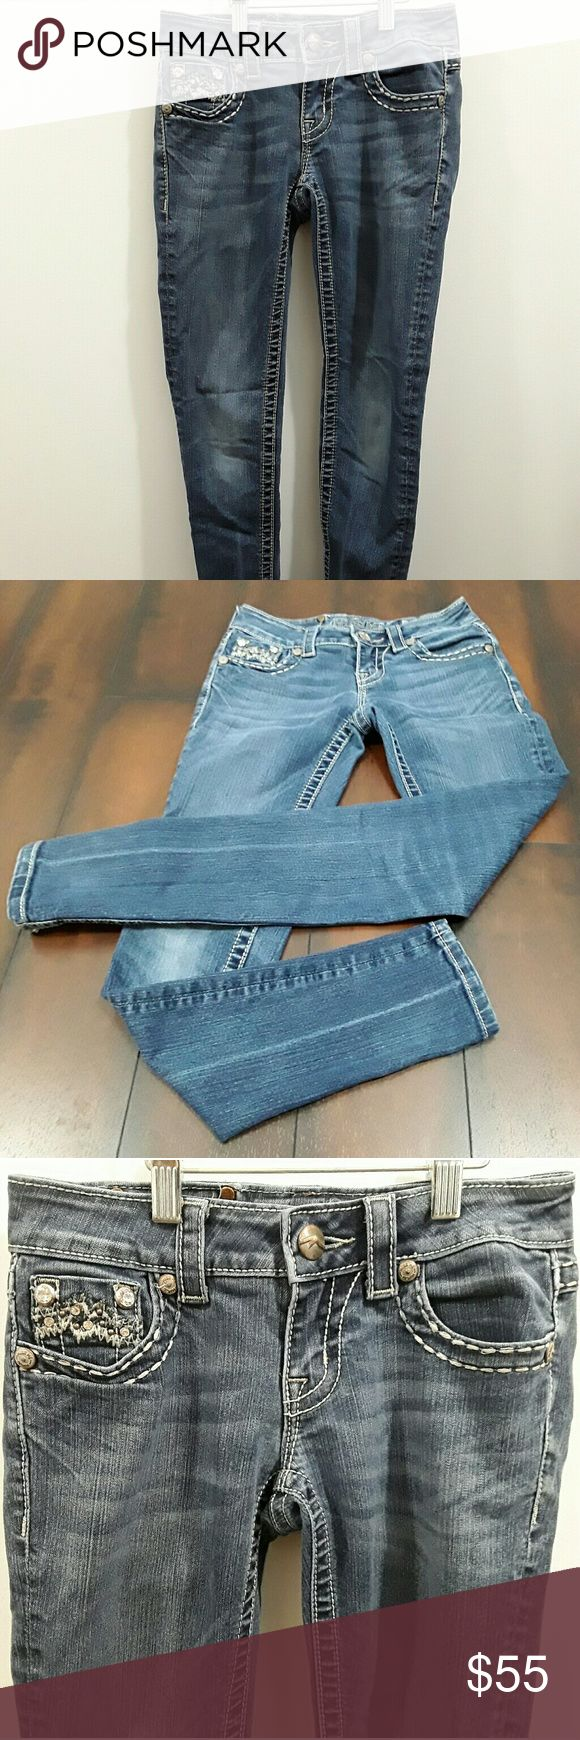 Miss Me denim skinny blue buckle jeans Miss Me brand denim skinny blue jeans buckle size 25. Non smoking house. Good used condition. No holes. Miss Me Jeans Skinny